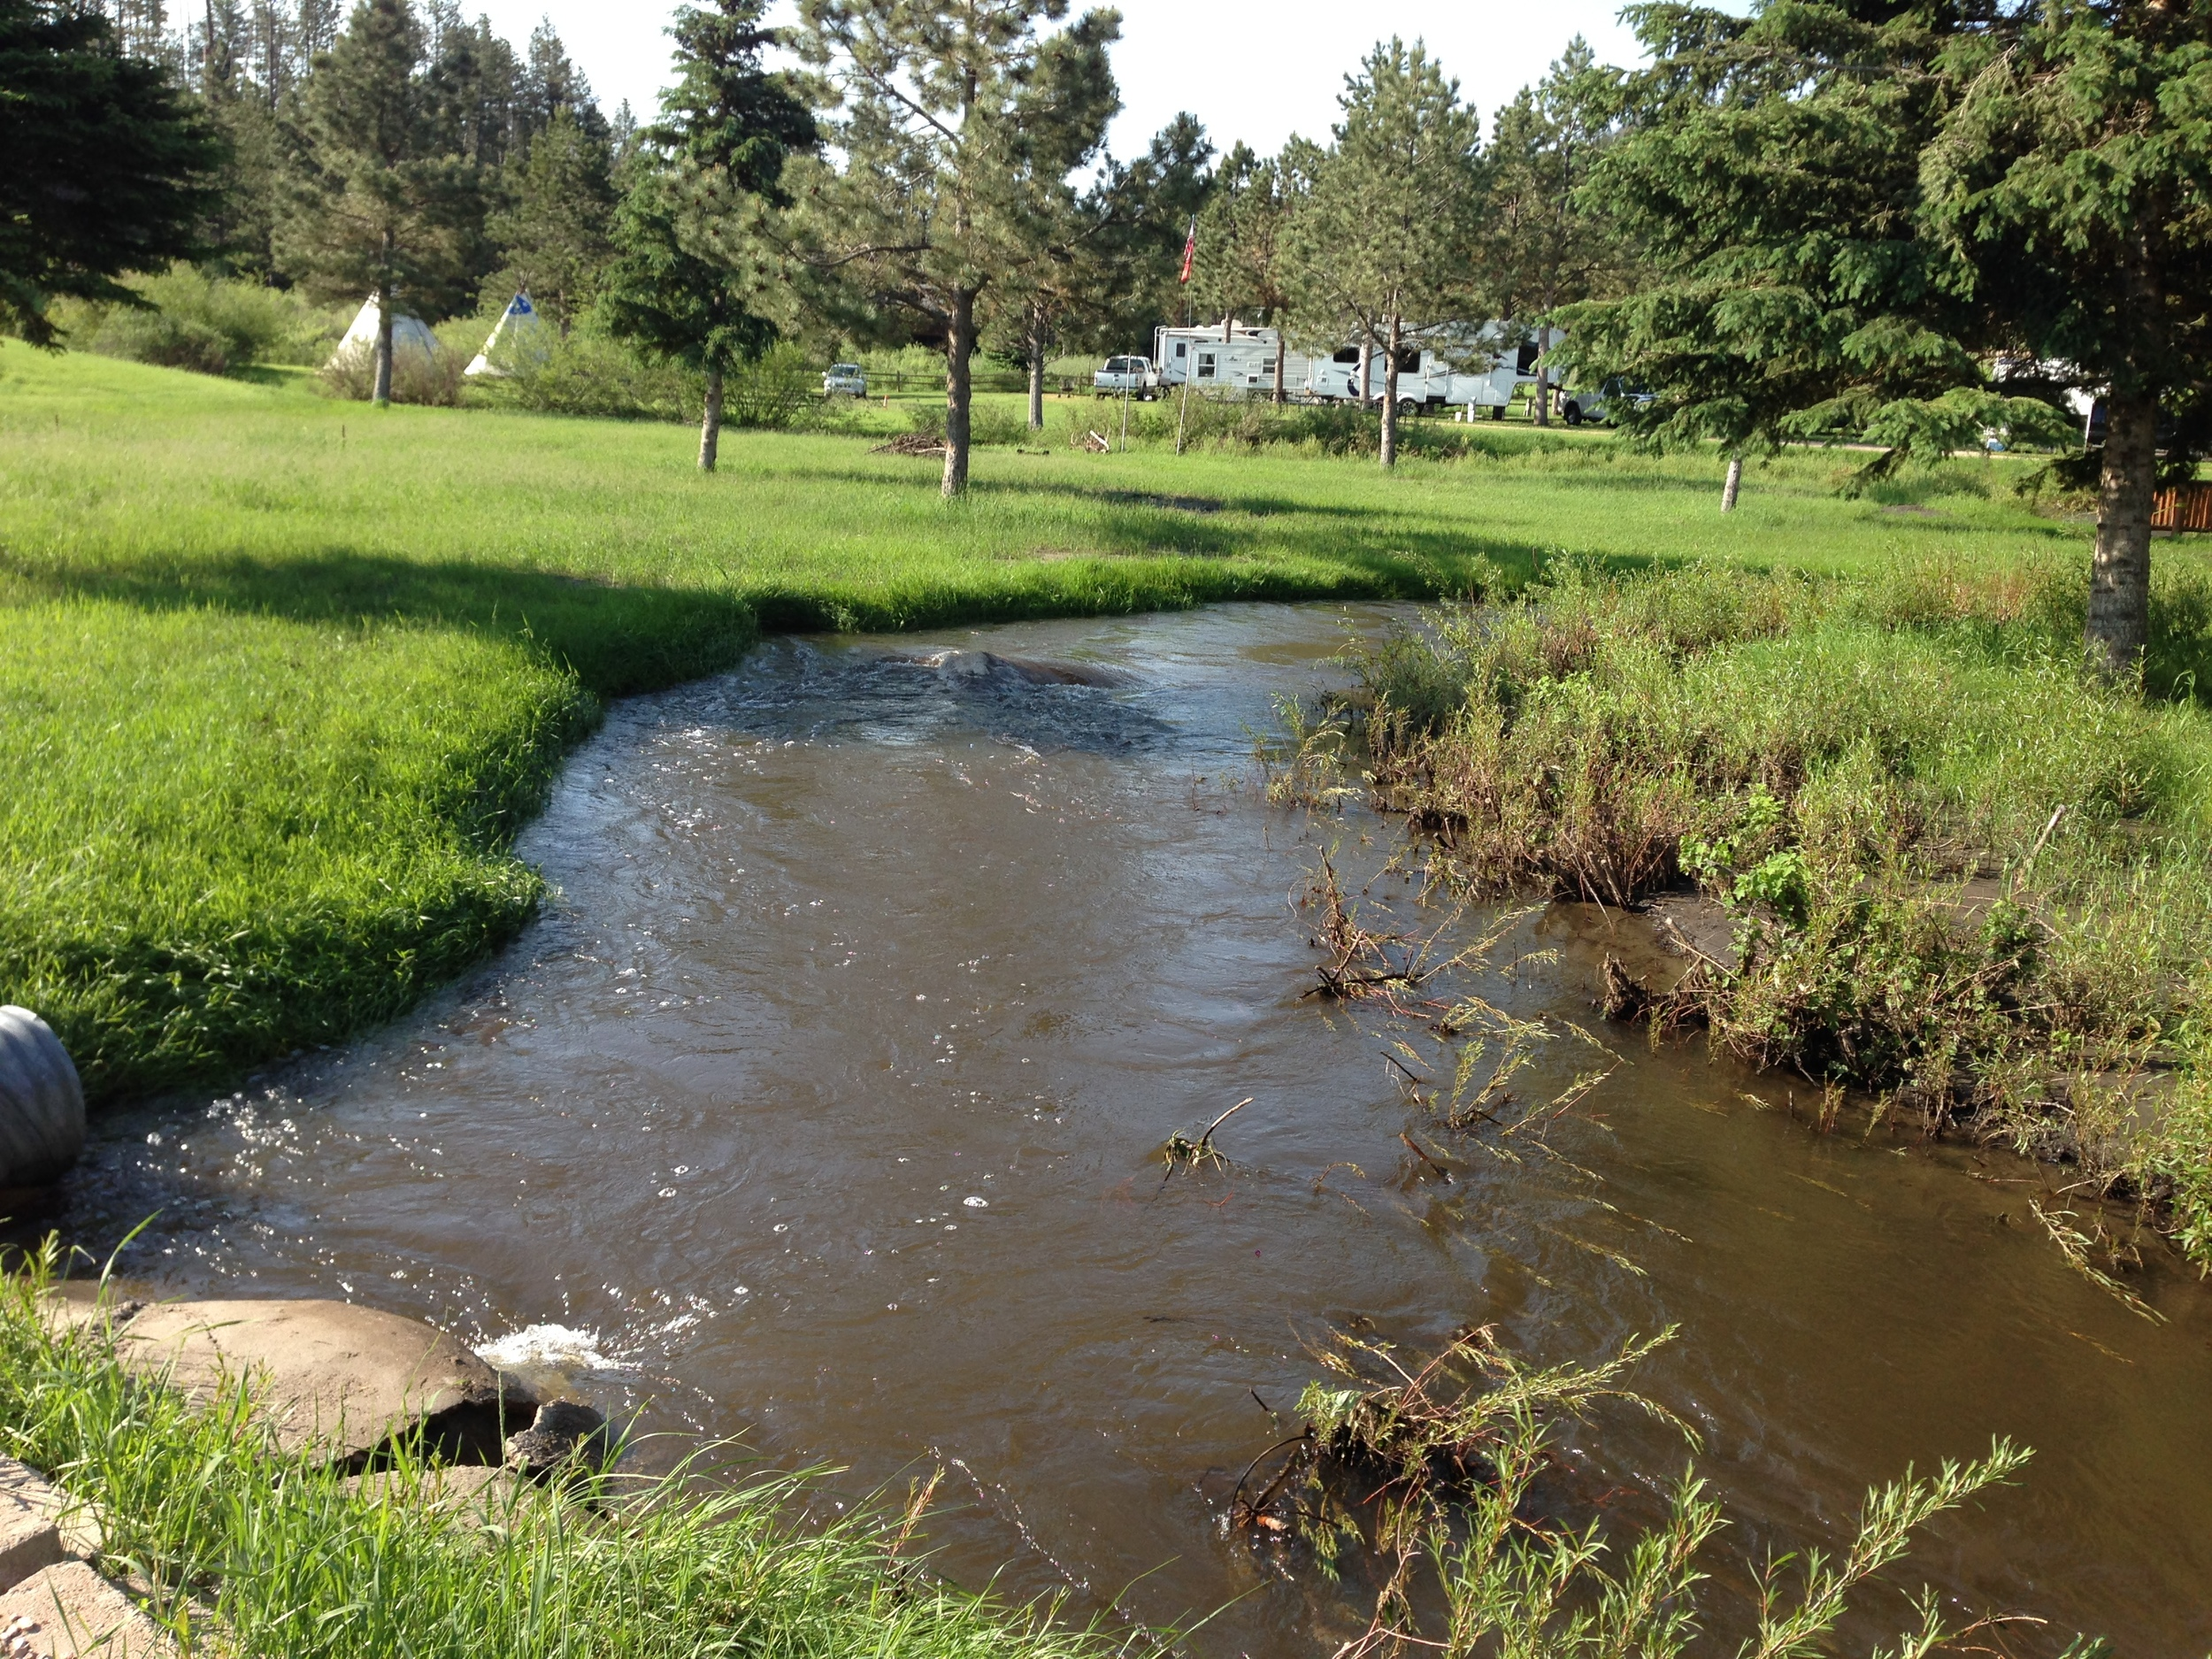 Spring Creek, running through Crooked Creek Resort, Hill City, SD.